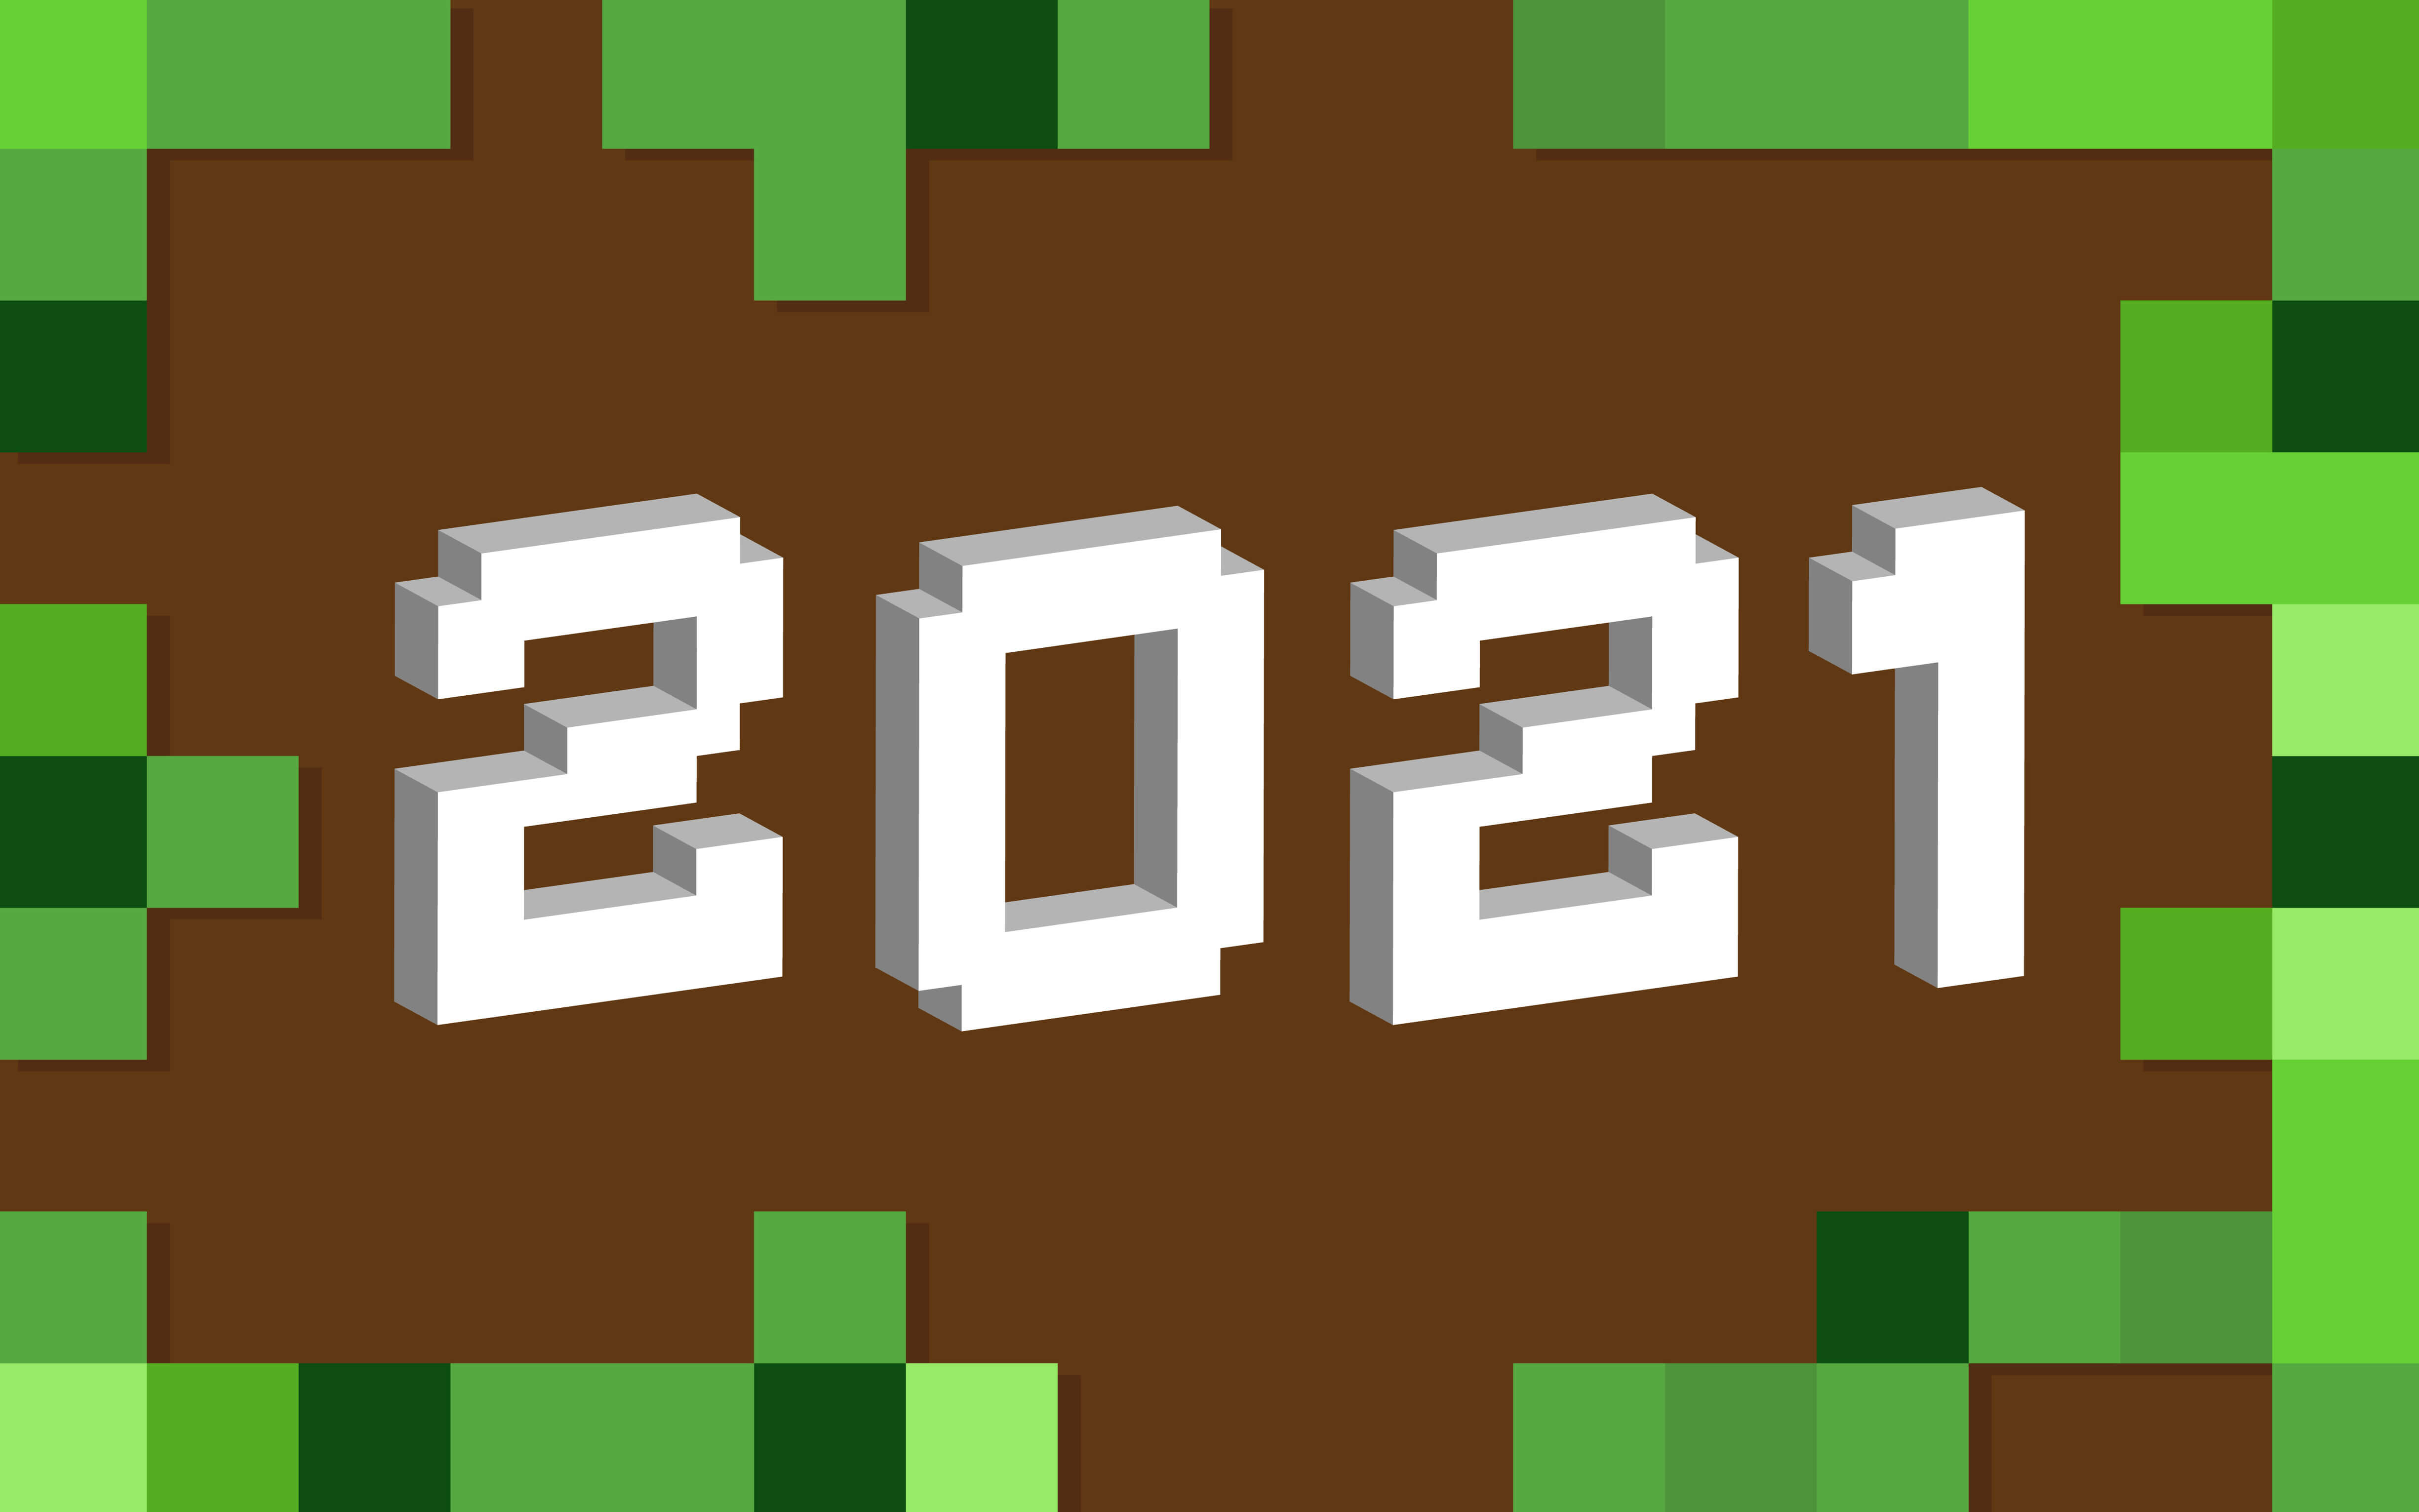 How to set up your own Minecraft server 2021